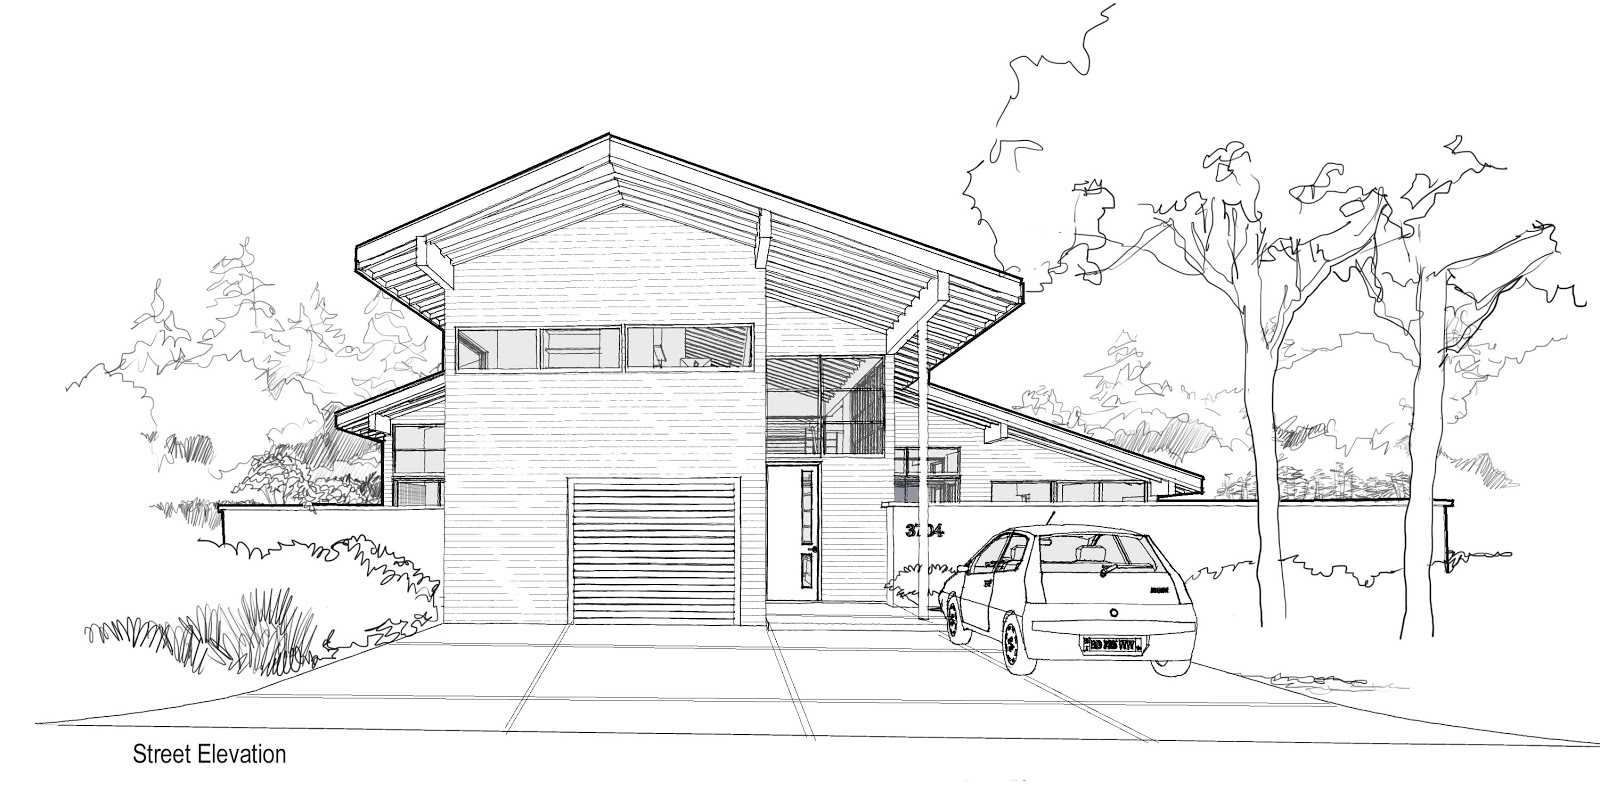 Drawn house modern architectural design Decorating Sketches · Architecture 416644